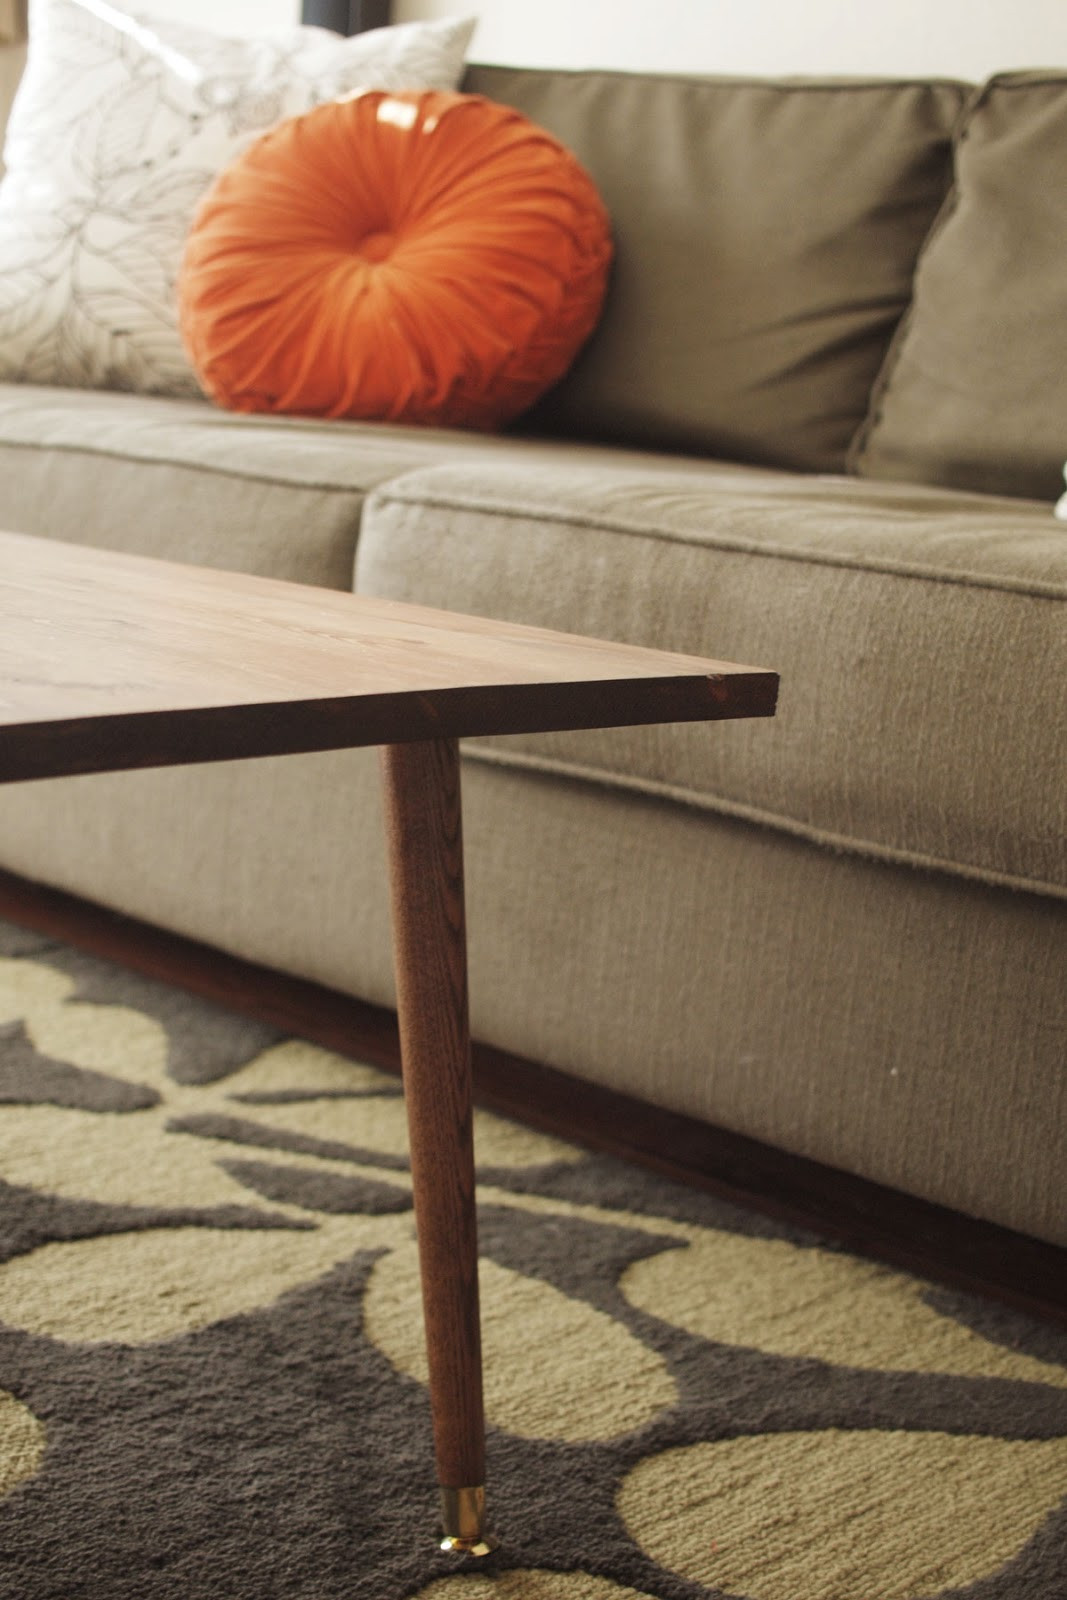 Best ideas about DIY Mid Century Modern Coffee Table . Save or Pin DIY Mid Century Modern Coffee Table A Pair of Pears Now.